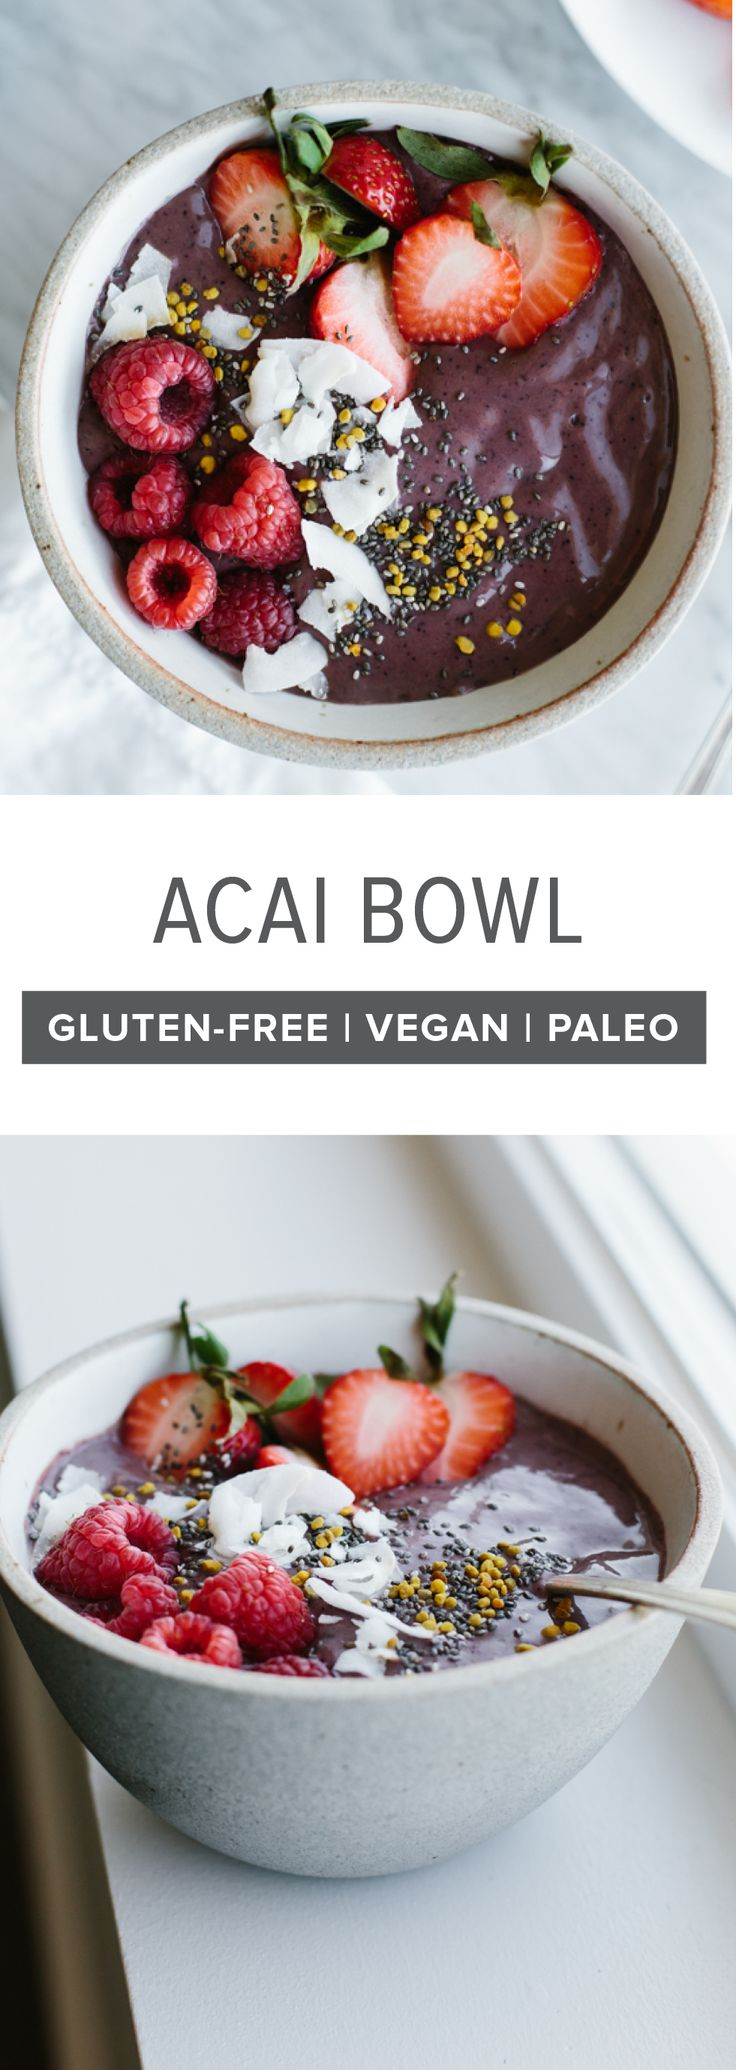 Acai bowl recipe with mixed berries. A delicious, healthy smoothie bowl for breakfast or lunch that's gluten-free, vegan and paleo. #acai #acaibowl #smoothiebowlrecipe